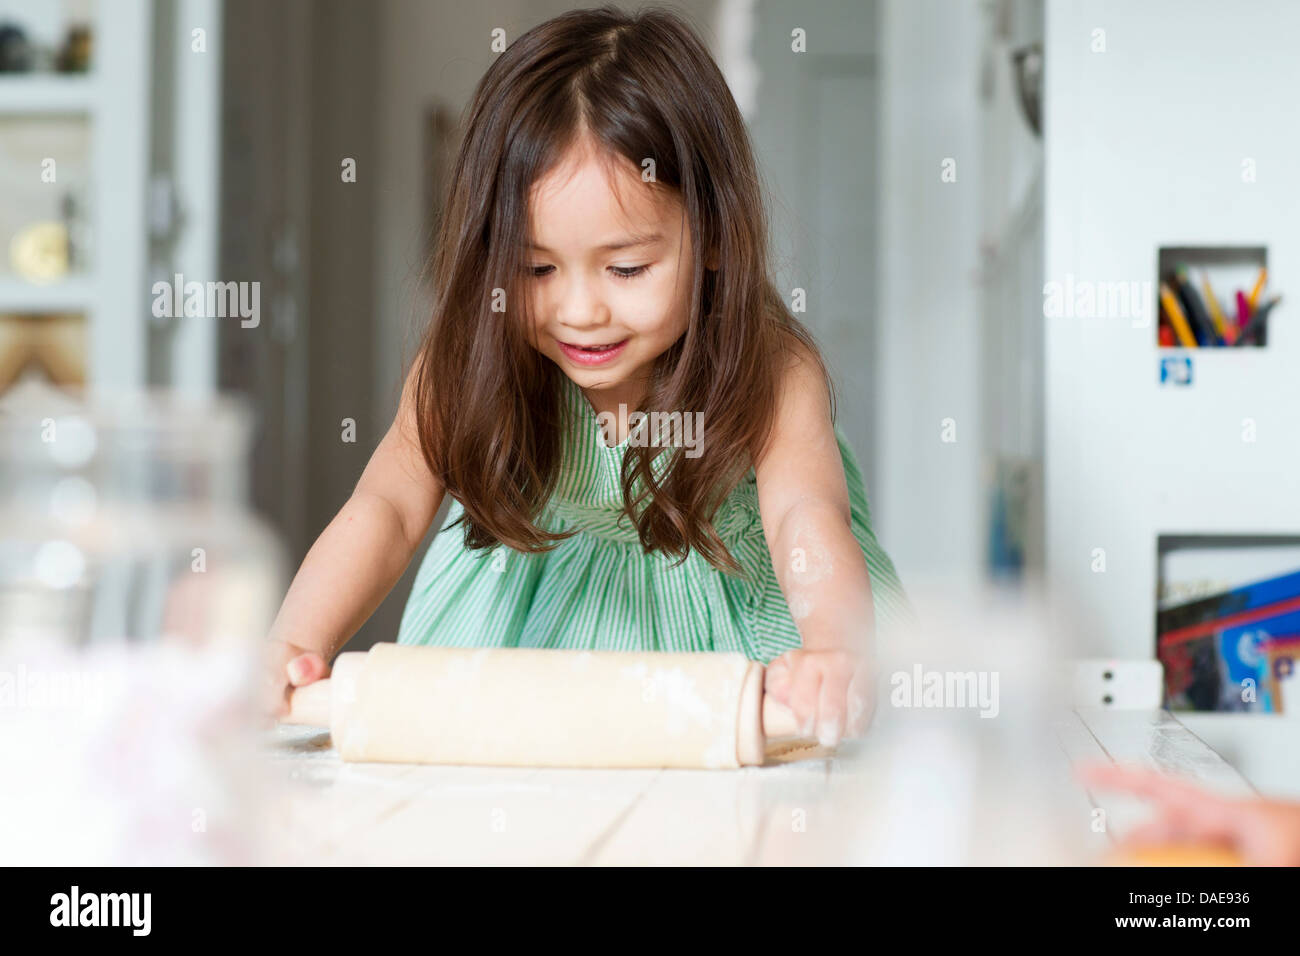 Young girl rolling out pastry on kitchen counter - Stock Image